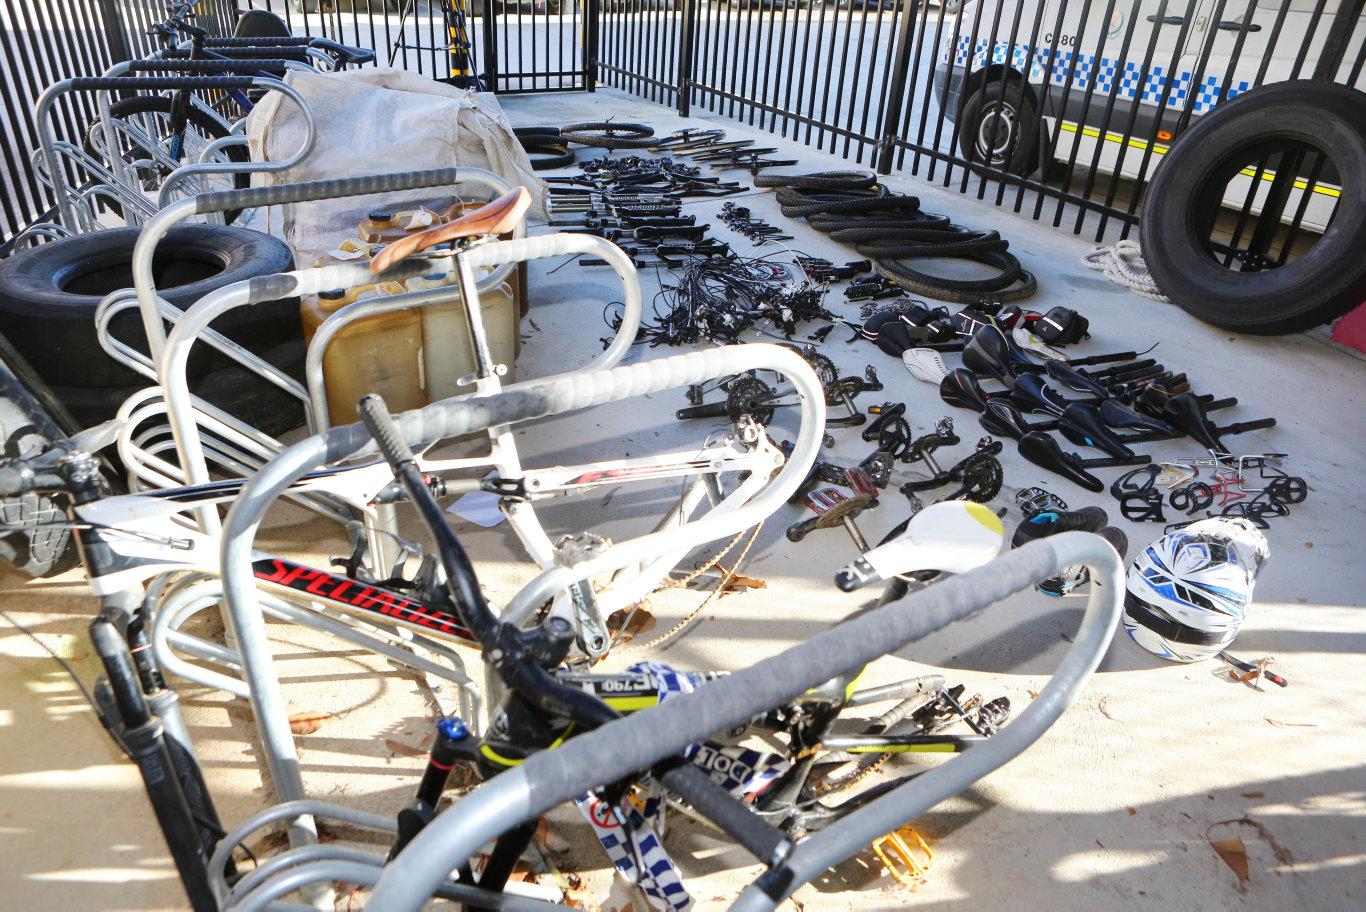 Police uncovered a host of stolen motorcycles and property after a search of a Dirty Creek Rd property this week.